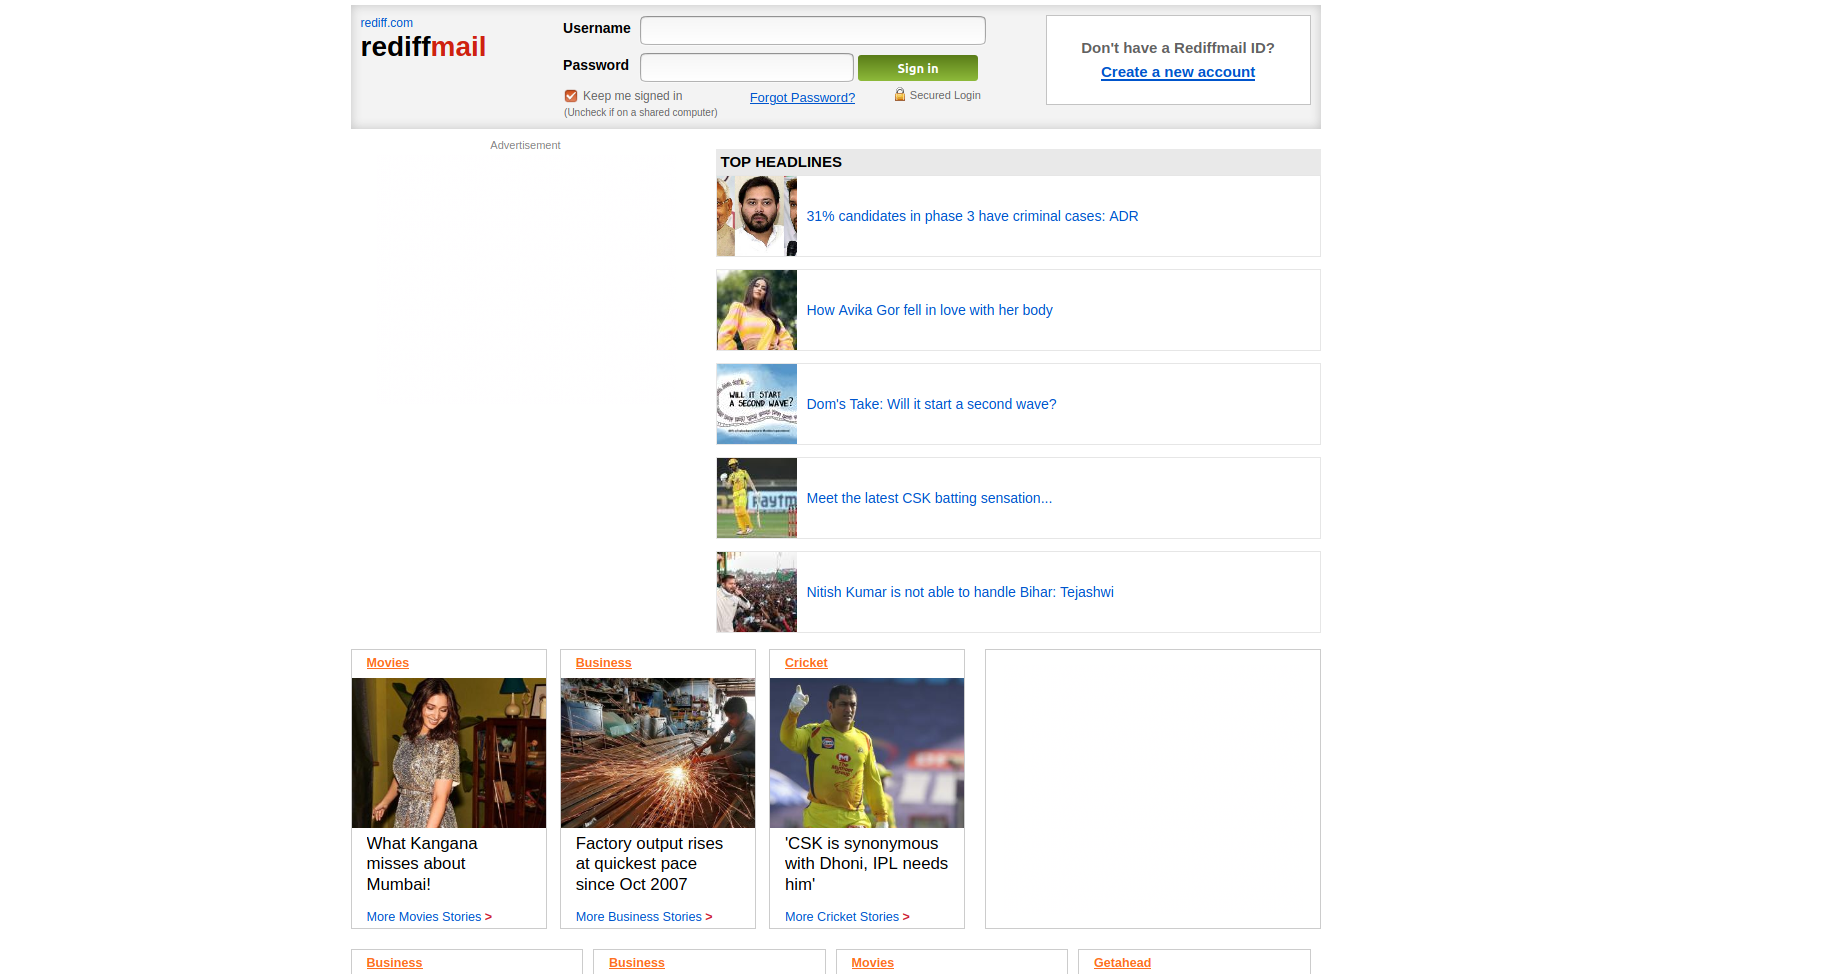 Complete Guide On Rediffmail Login